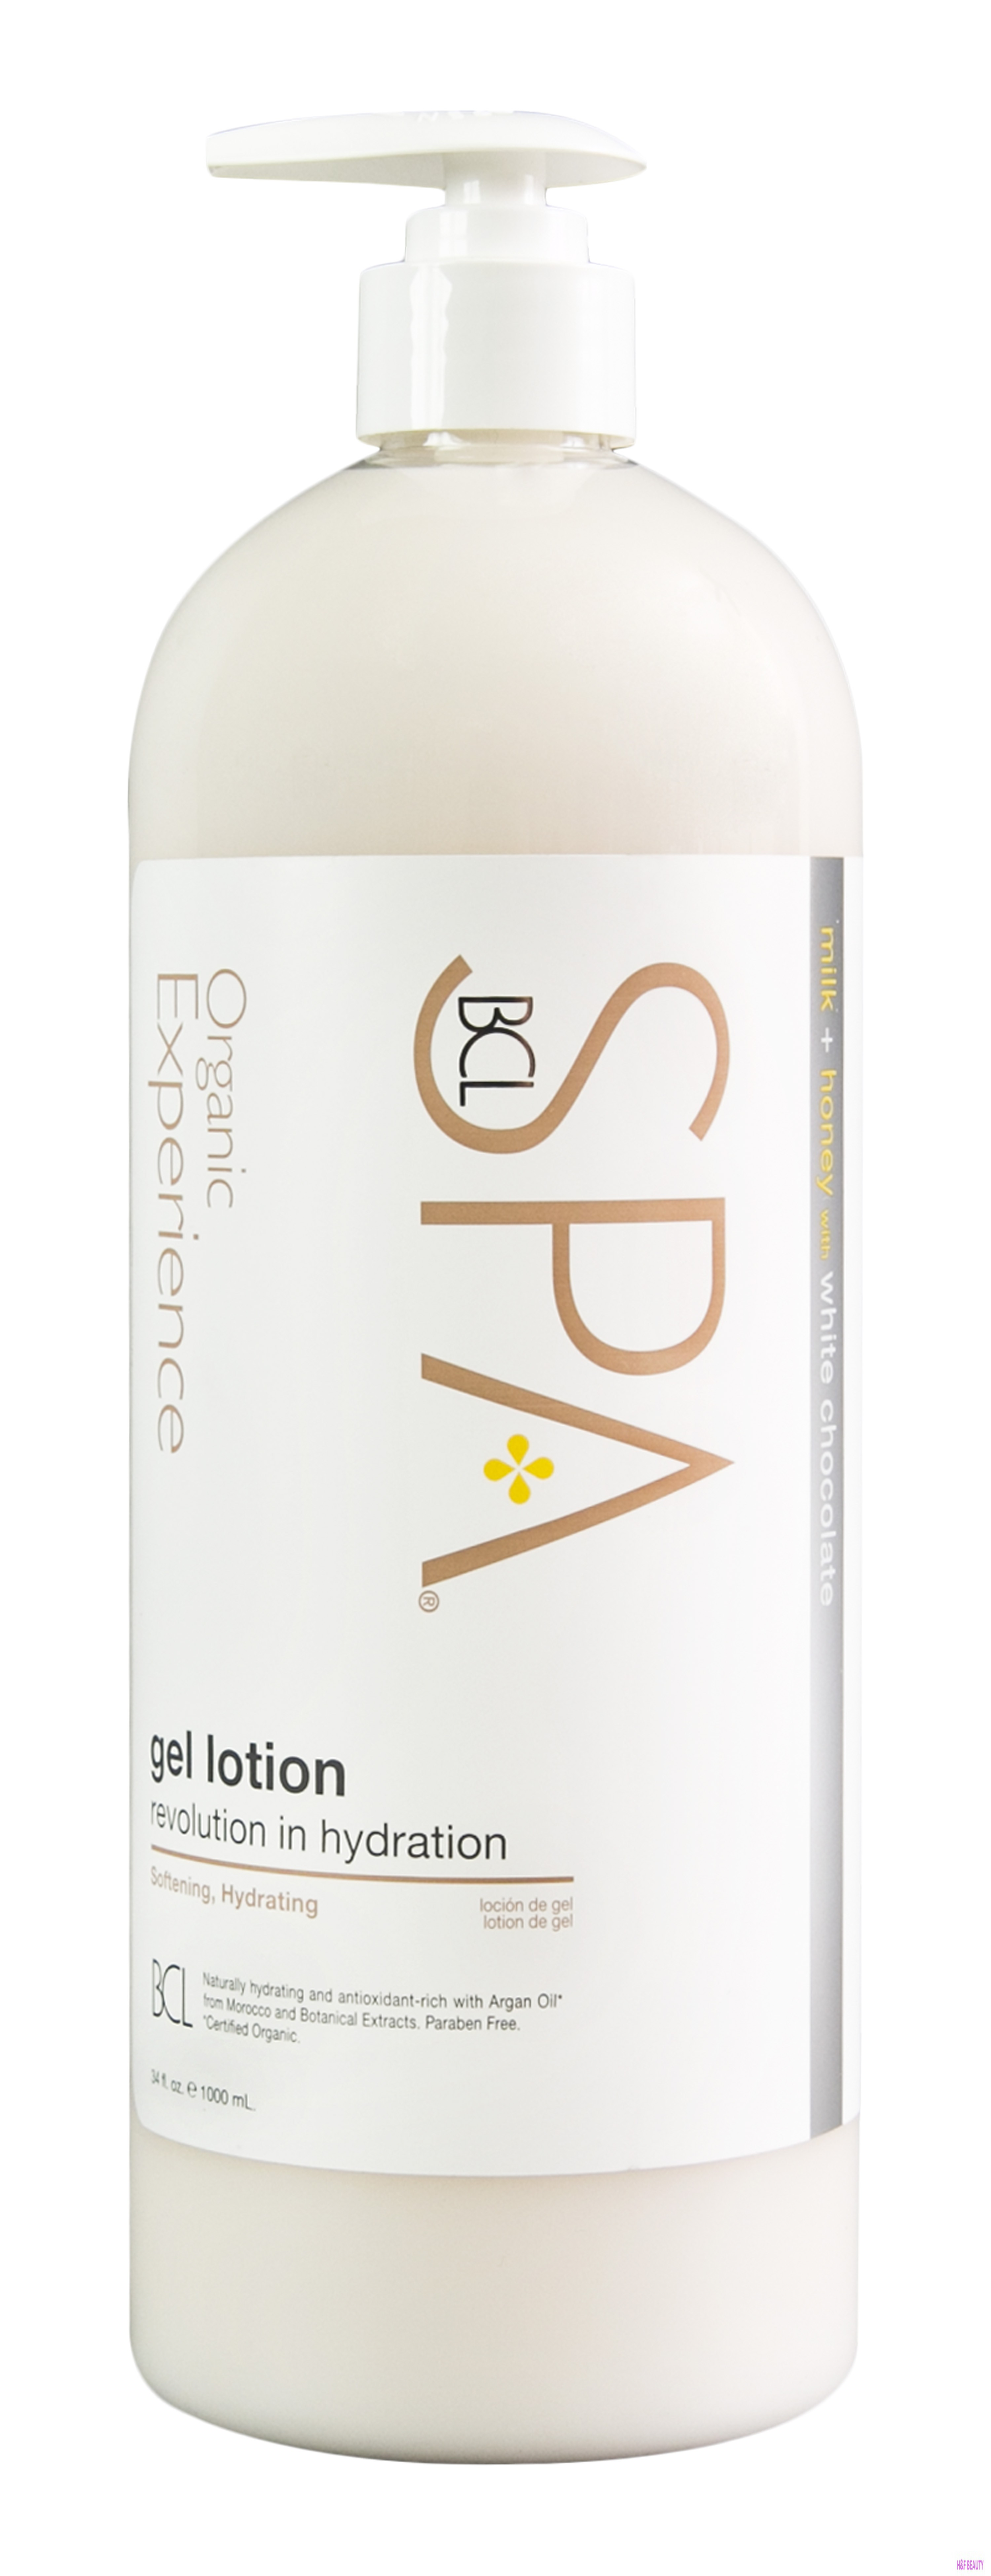 BCL Spa Milk + Honey with White Chocolate Gel Lotion